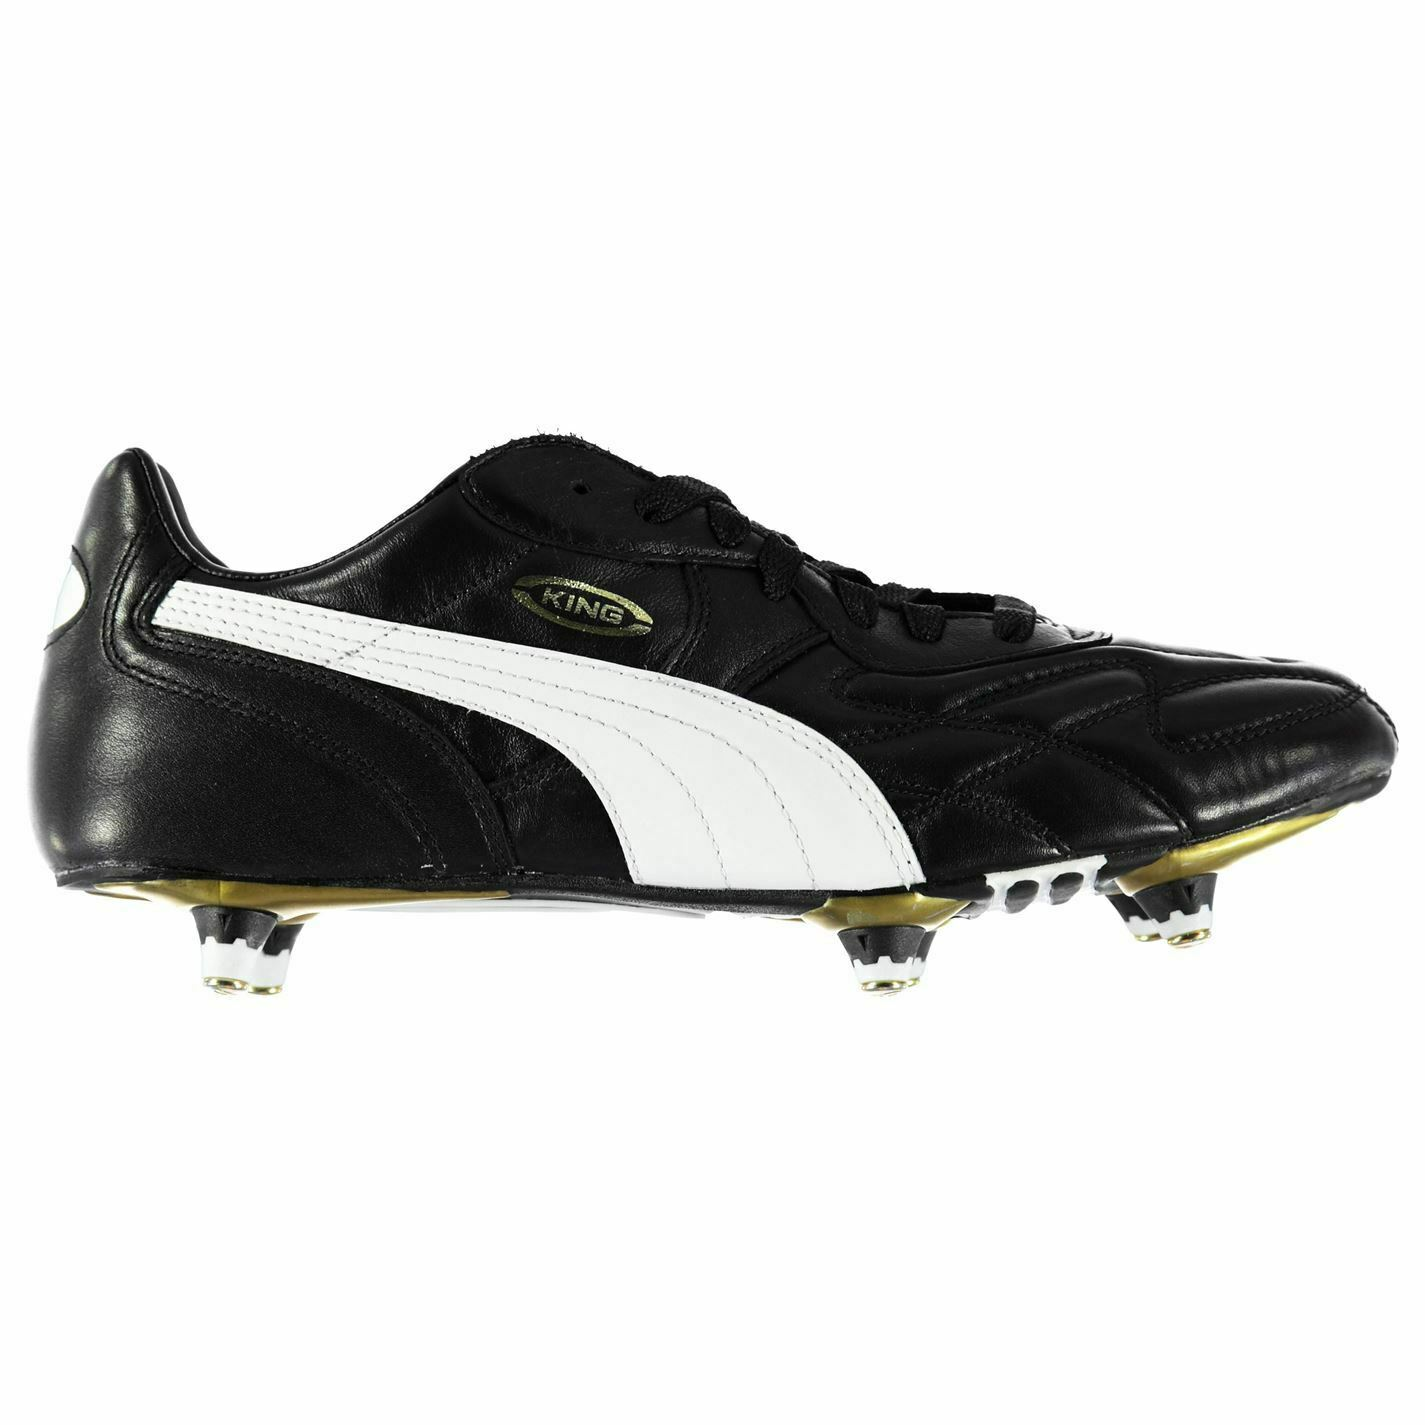 Puma King Pro SG Soft Ground Football Boots Mens Black/White Soccer Shoes  Cleats